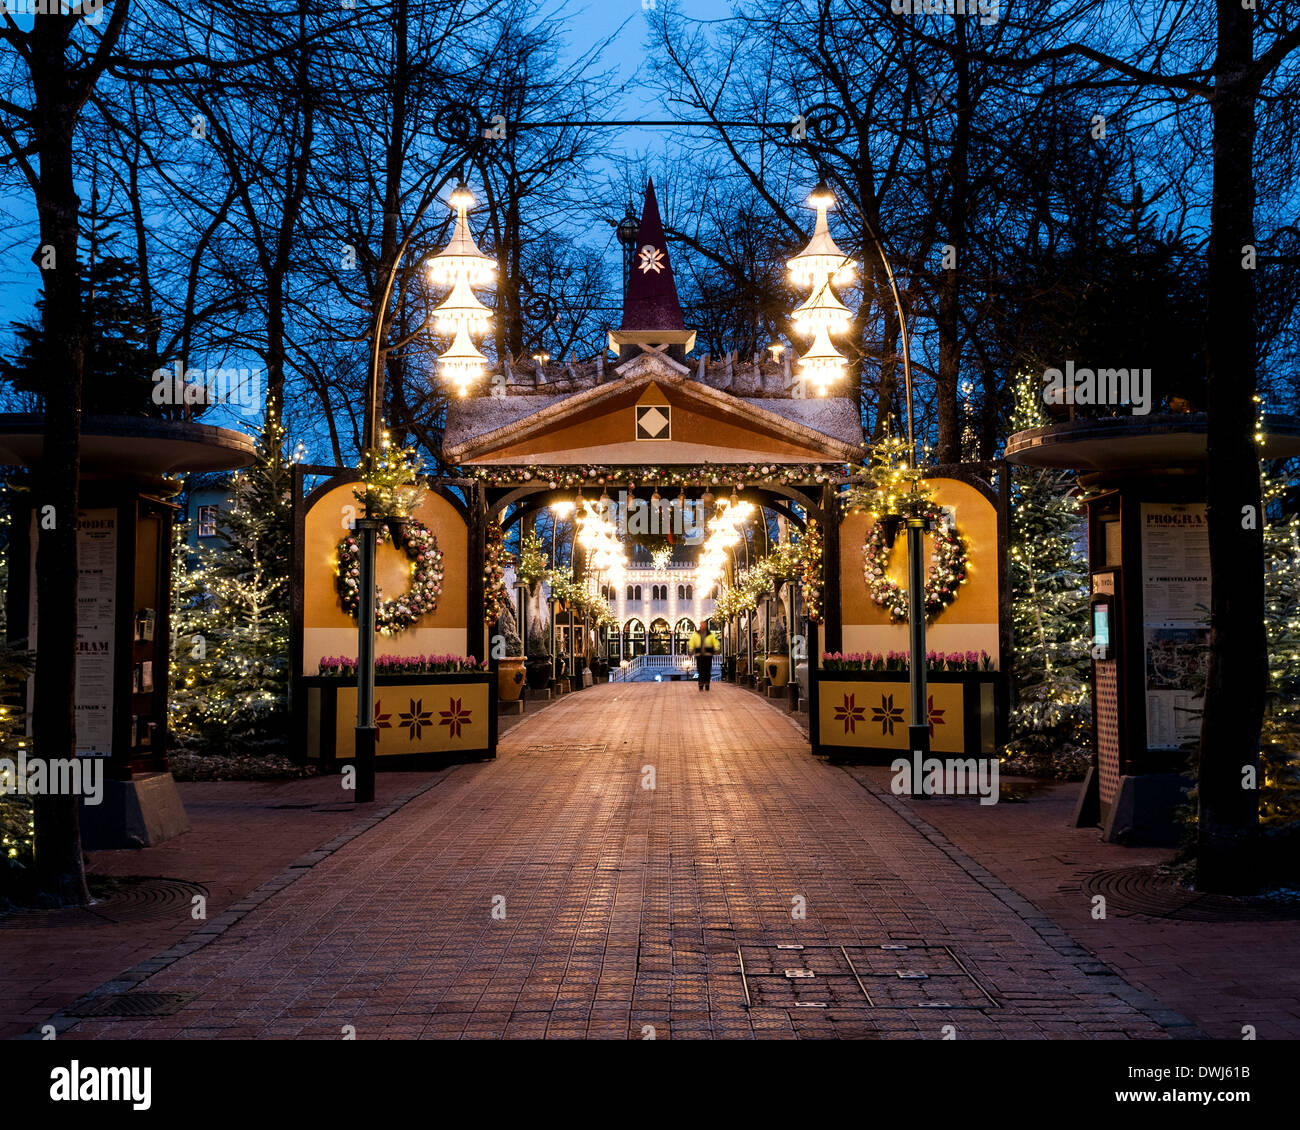 Tivoli Gardens, Copenhagen, Denmark. Architect: Various, 2014. Tivoli entrance in early morning. Stock Photo